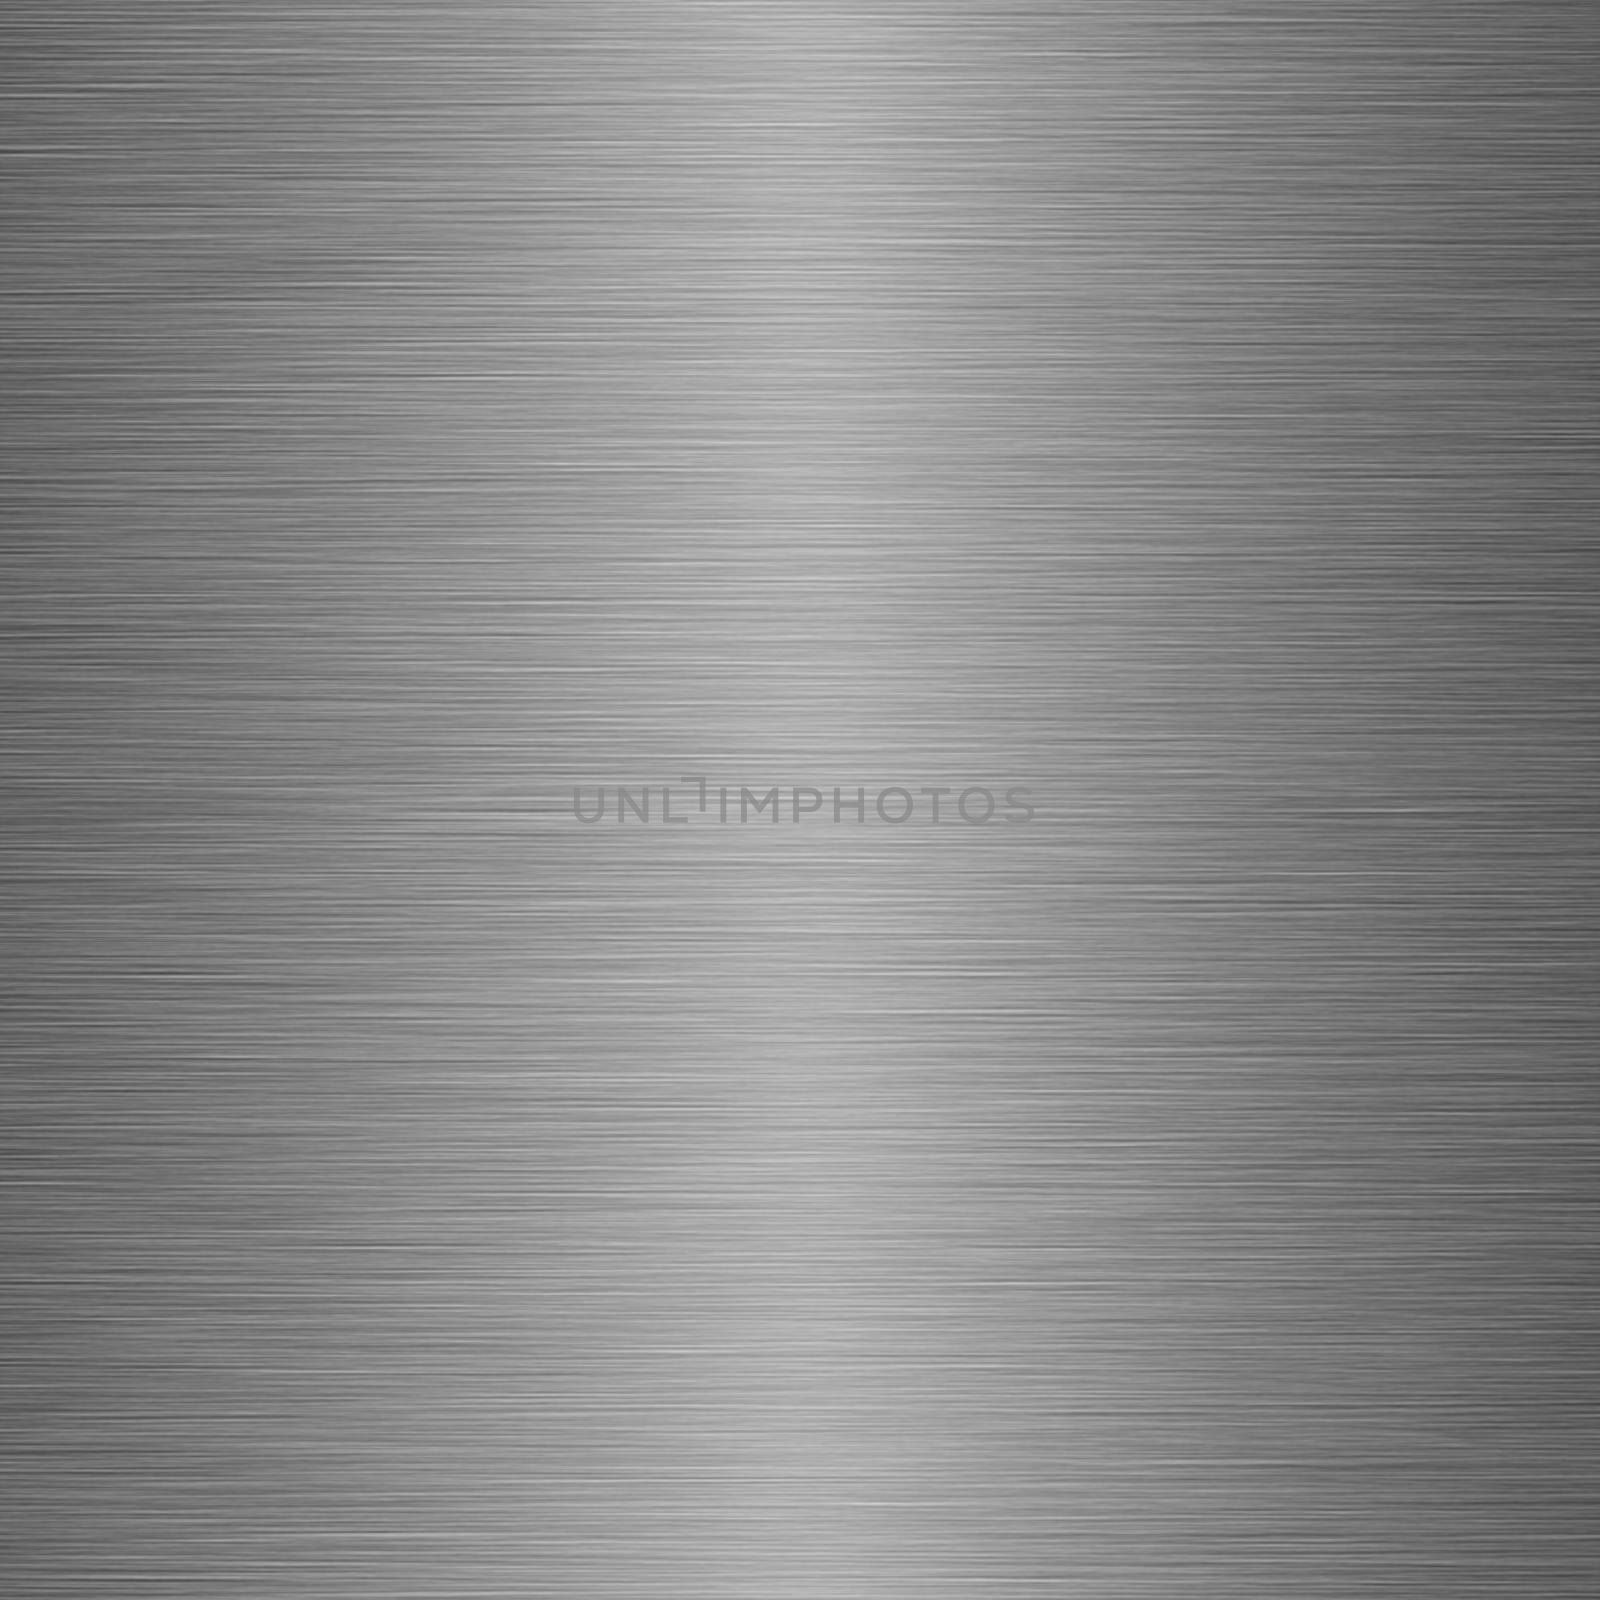 Background with a metal texture